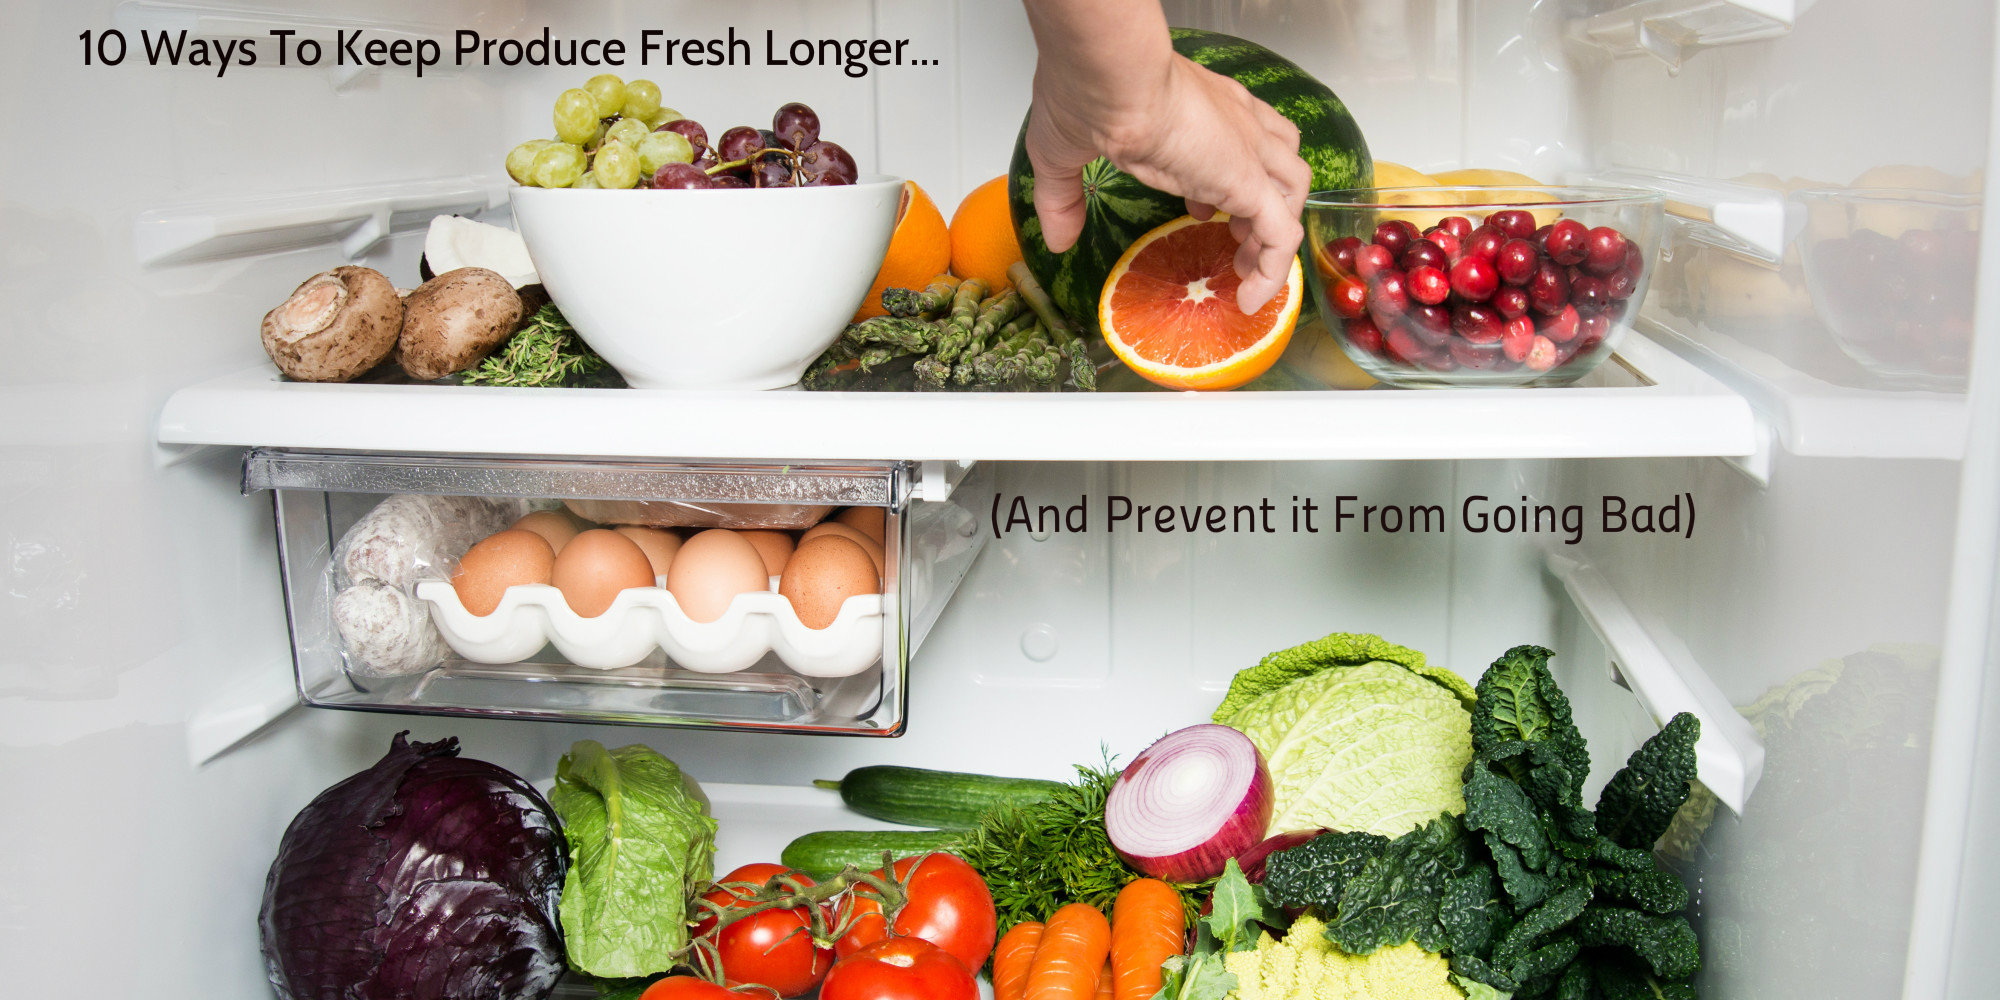 10 Ways To Keep Produce Fresh Longer (and prevent it from going bad)